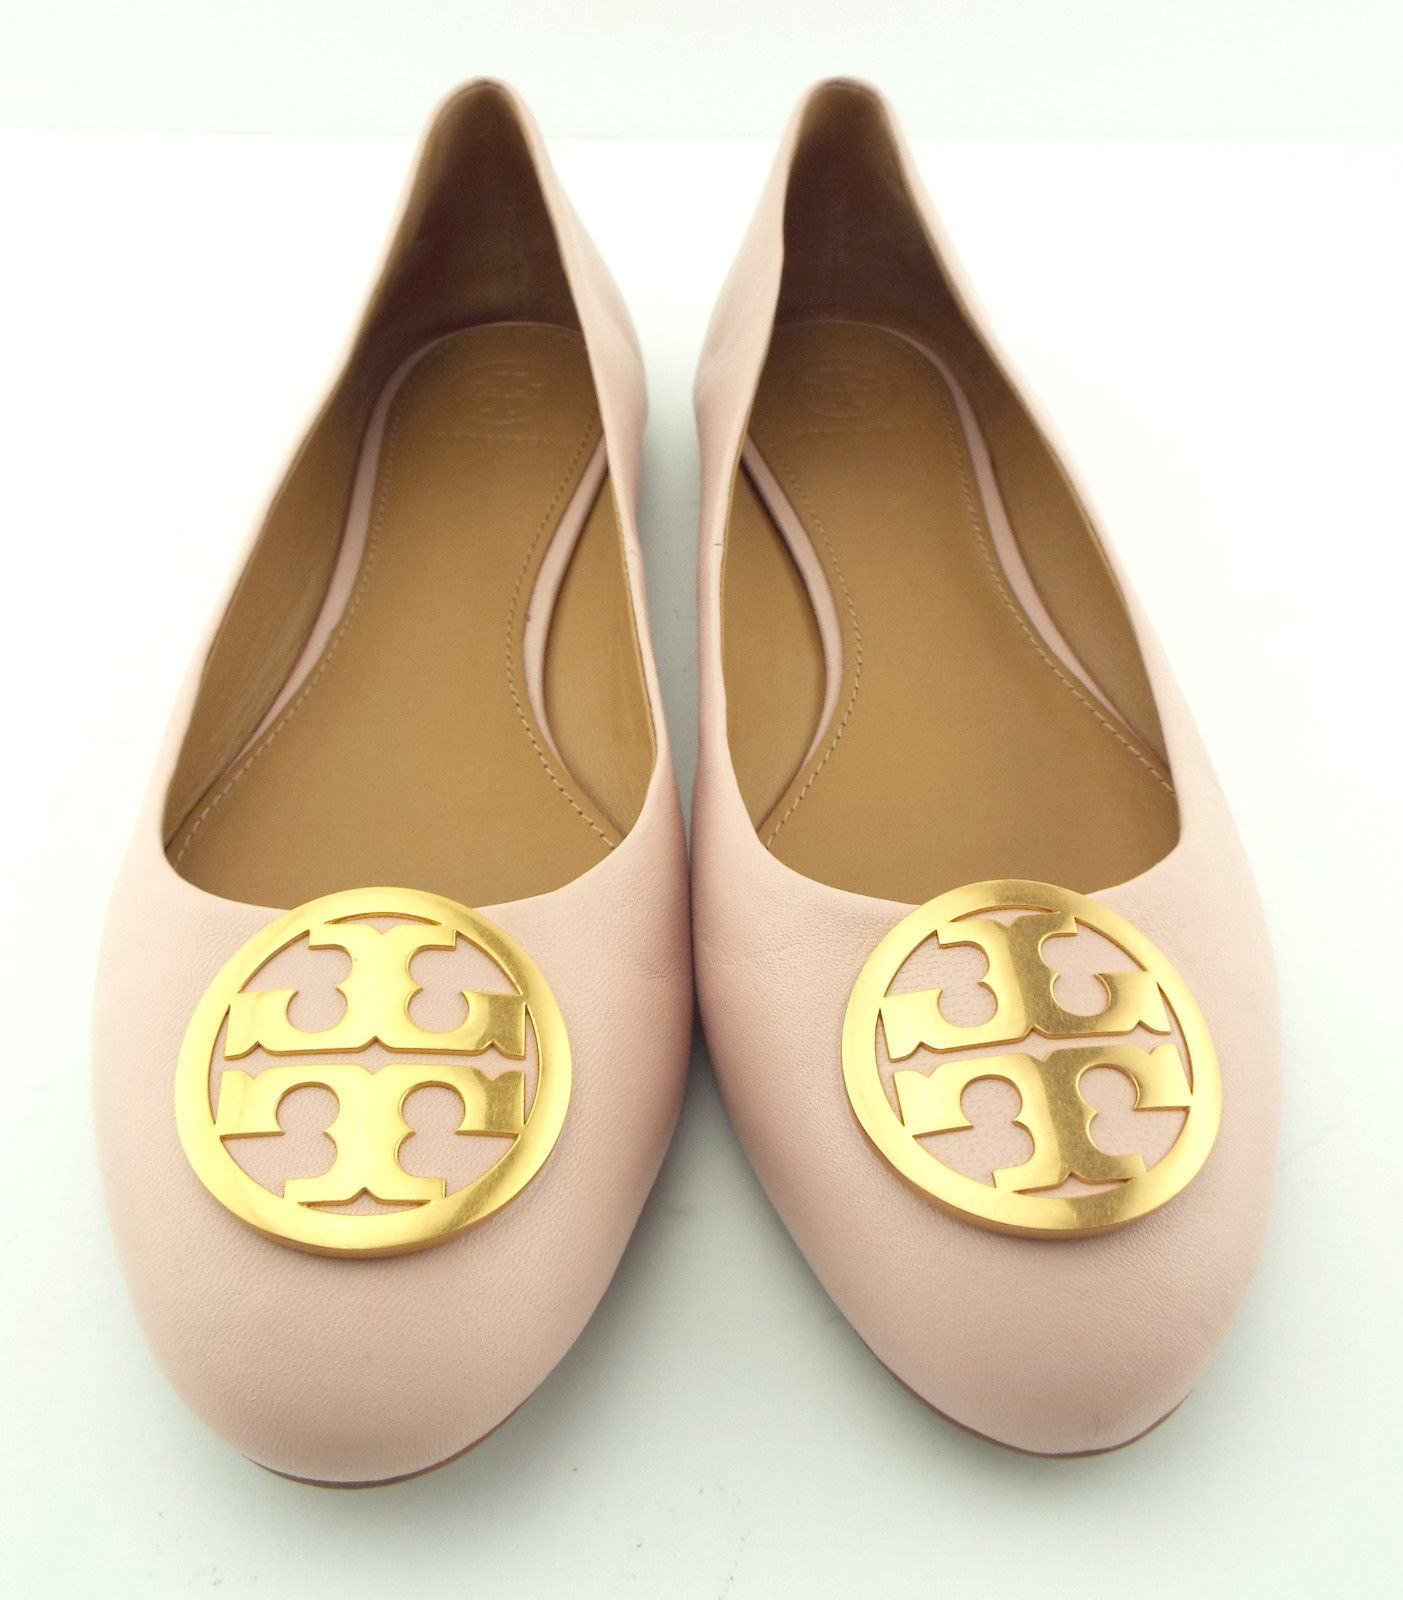 TORY BURCH Size 10 BENTON Pink Leather Ballet Flats Shoes